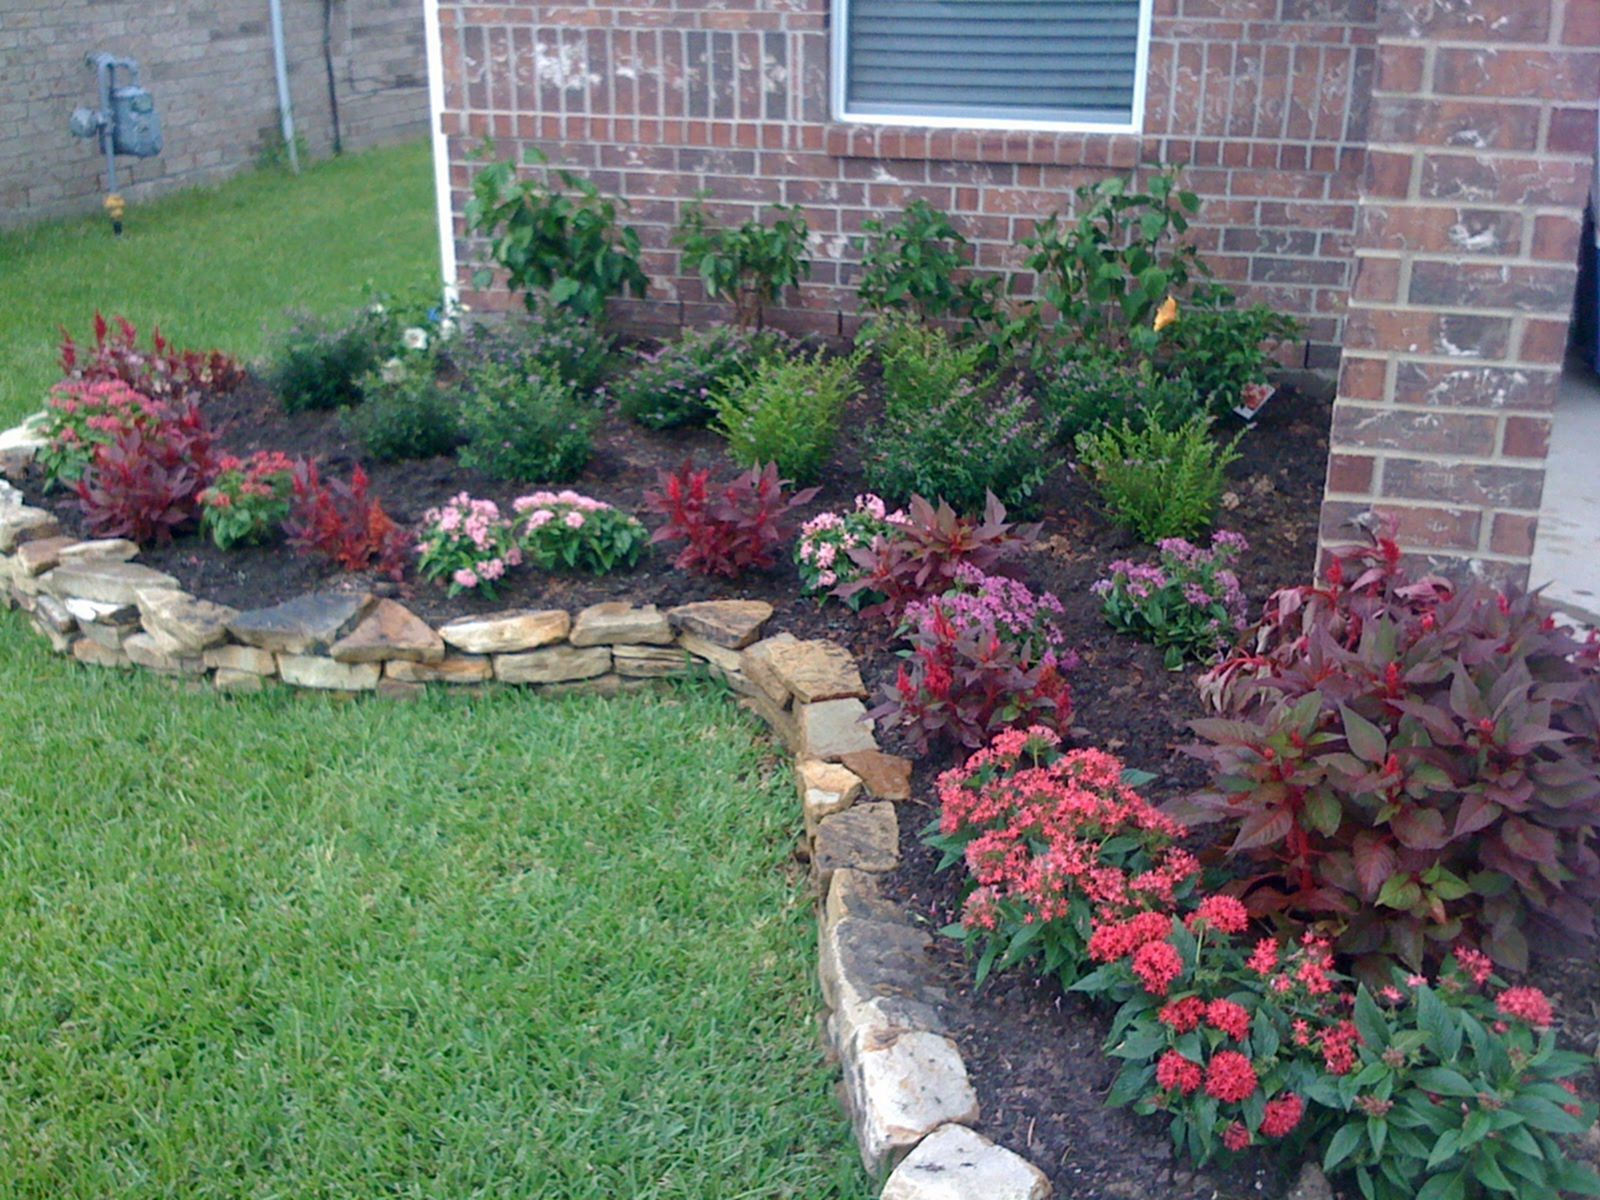 Marvelous 35 Incredible Flower Beds Ideas To Make Your Home Front Yard Awesome Https Decoredo Com 9959 Small Flower Gardens Flower Bed Designs Raised Garden